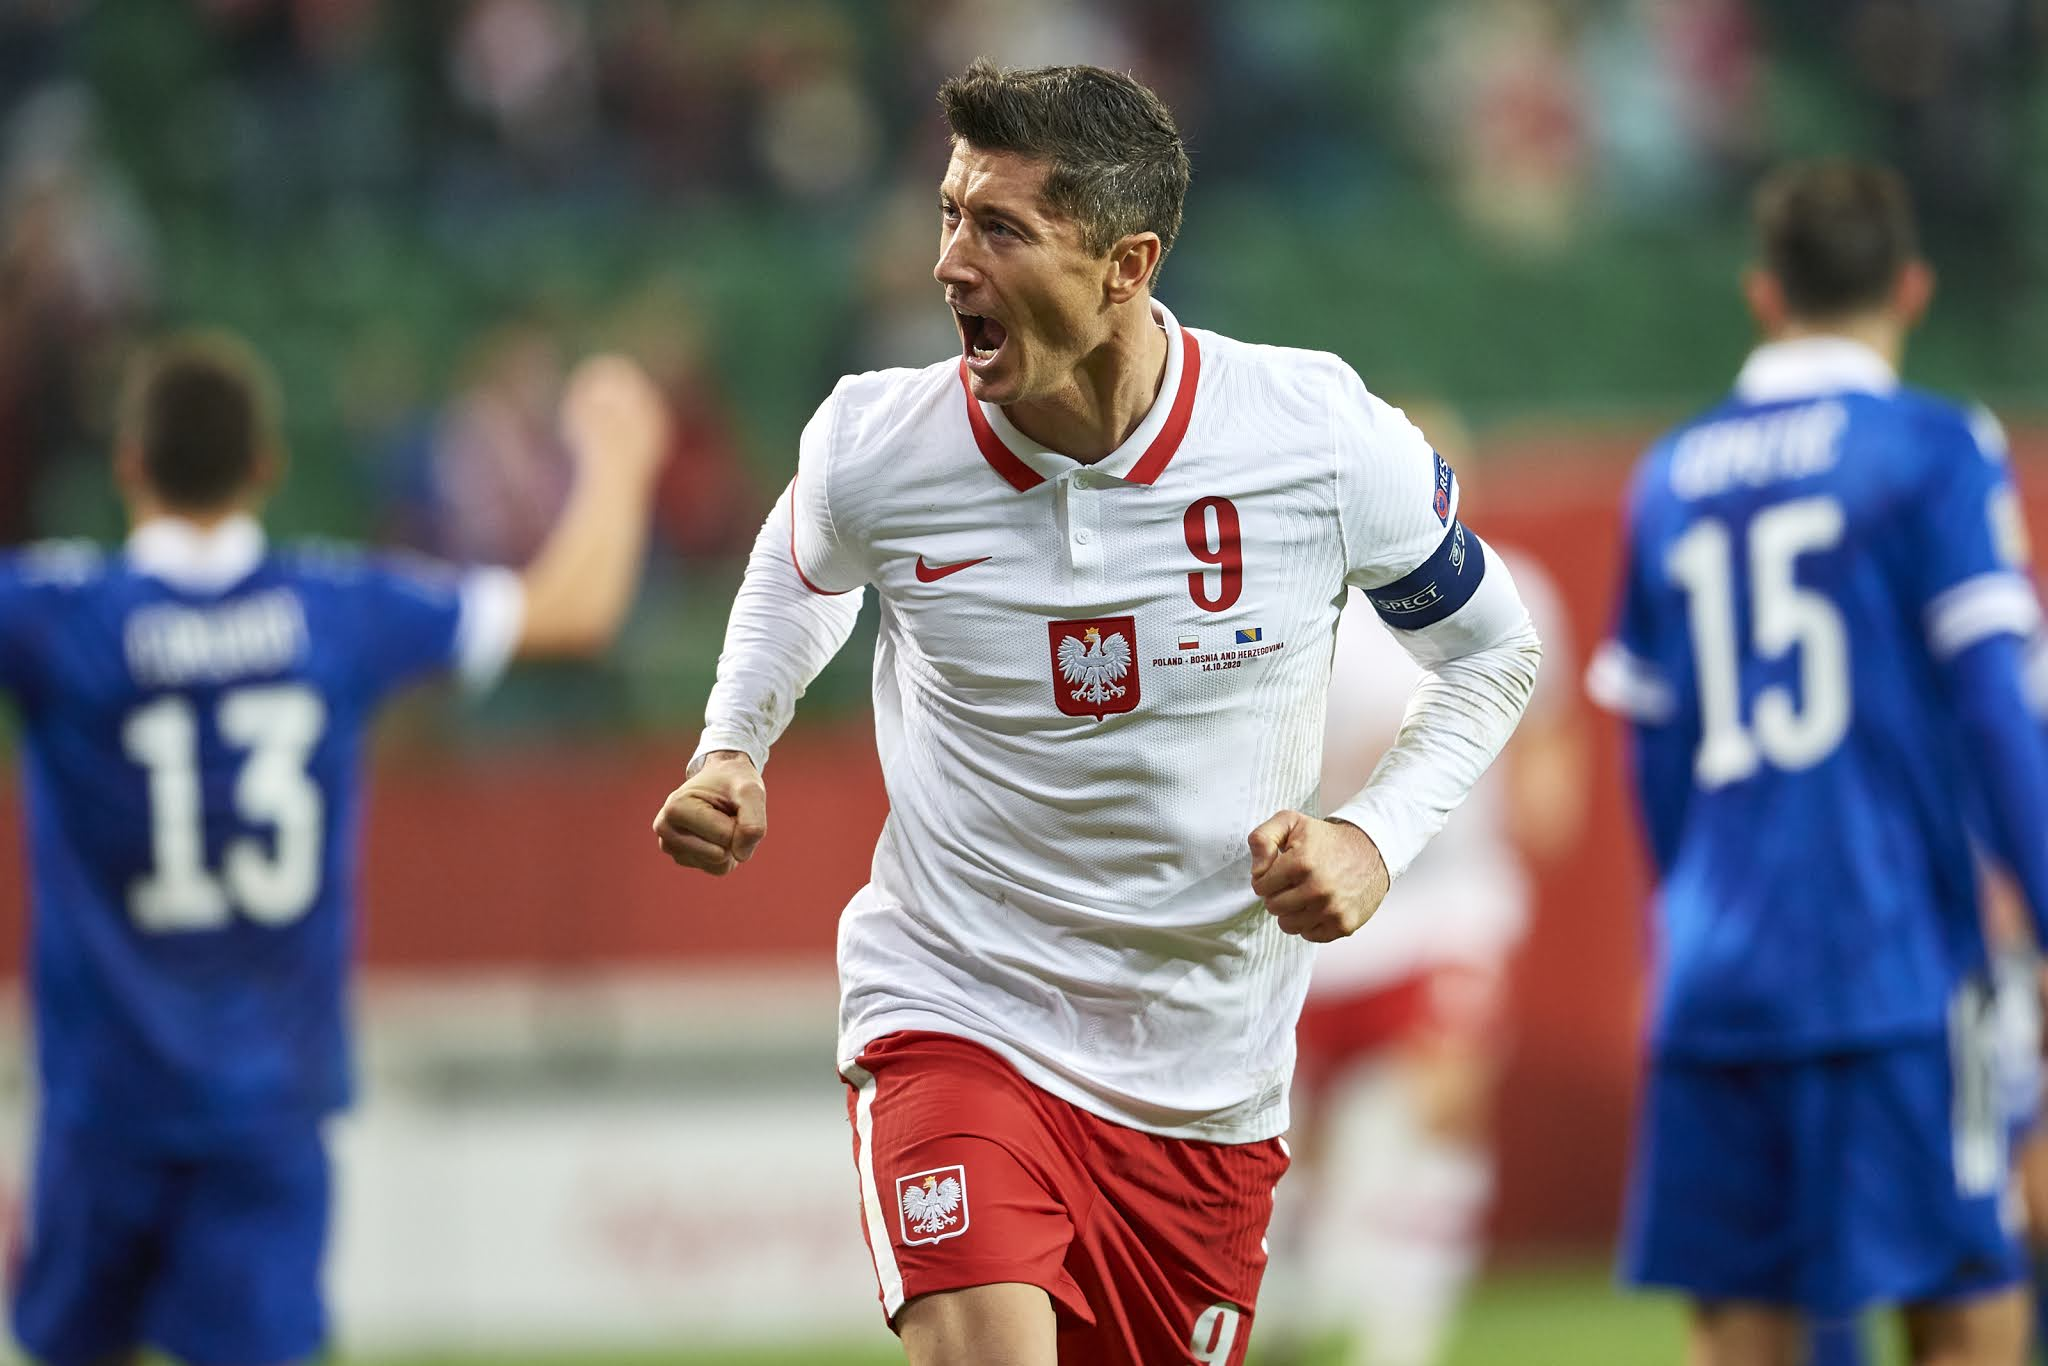 Robert Lewandowski will be hoping to inspire Poland to victory over Slovakia